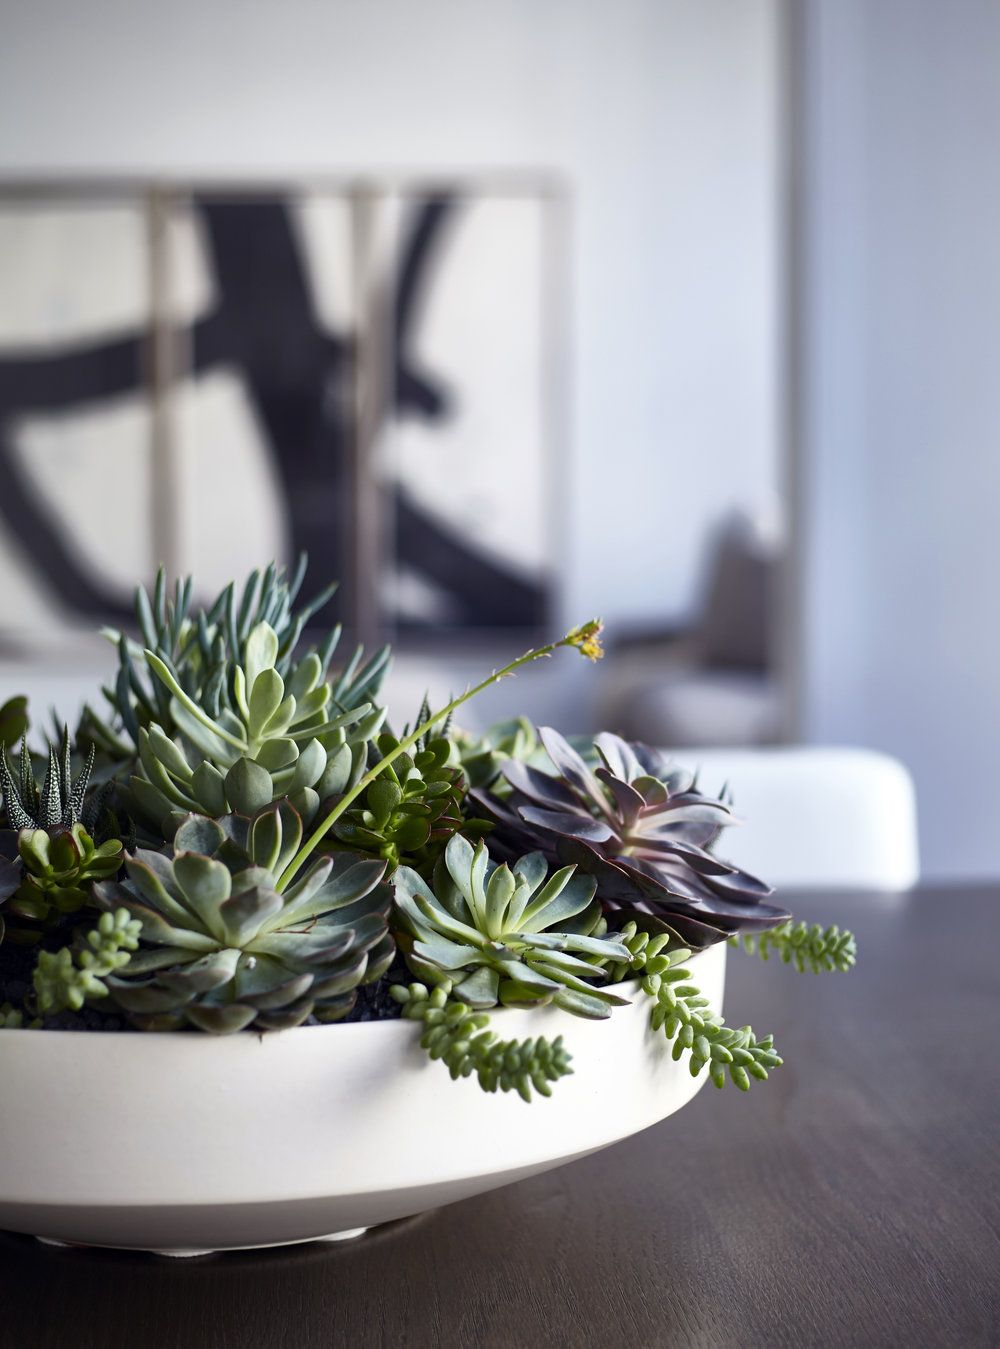 Pin By Shannon Cisar On Powder Room Succulent Centerpiece Dining Room Dining Table Centerpiece Dining Table Decor Centerpiece